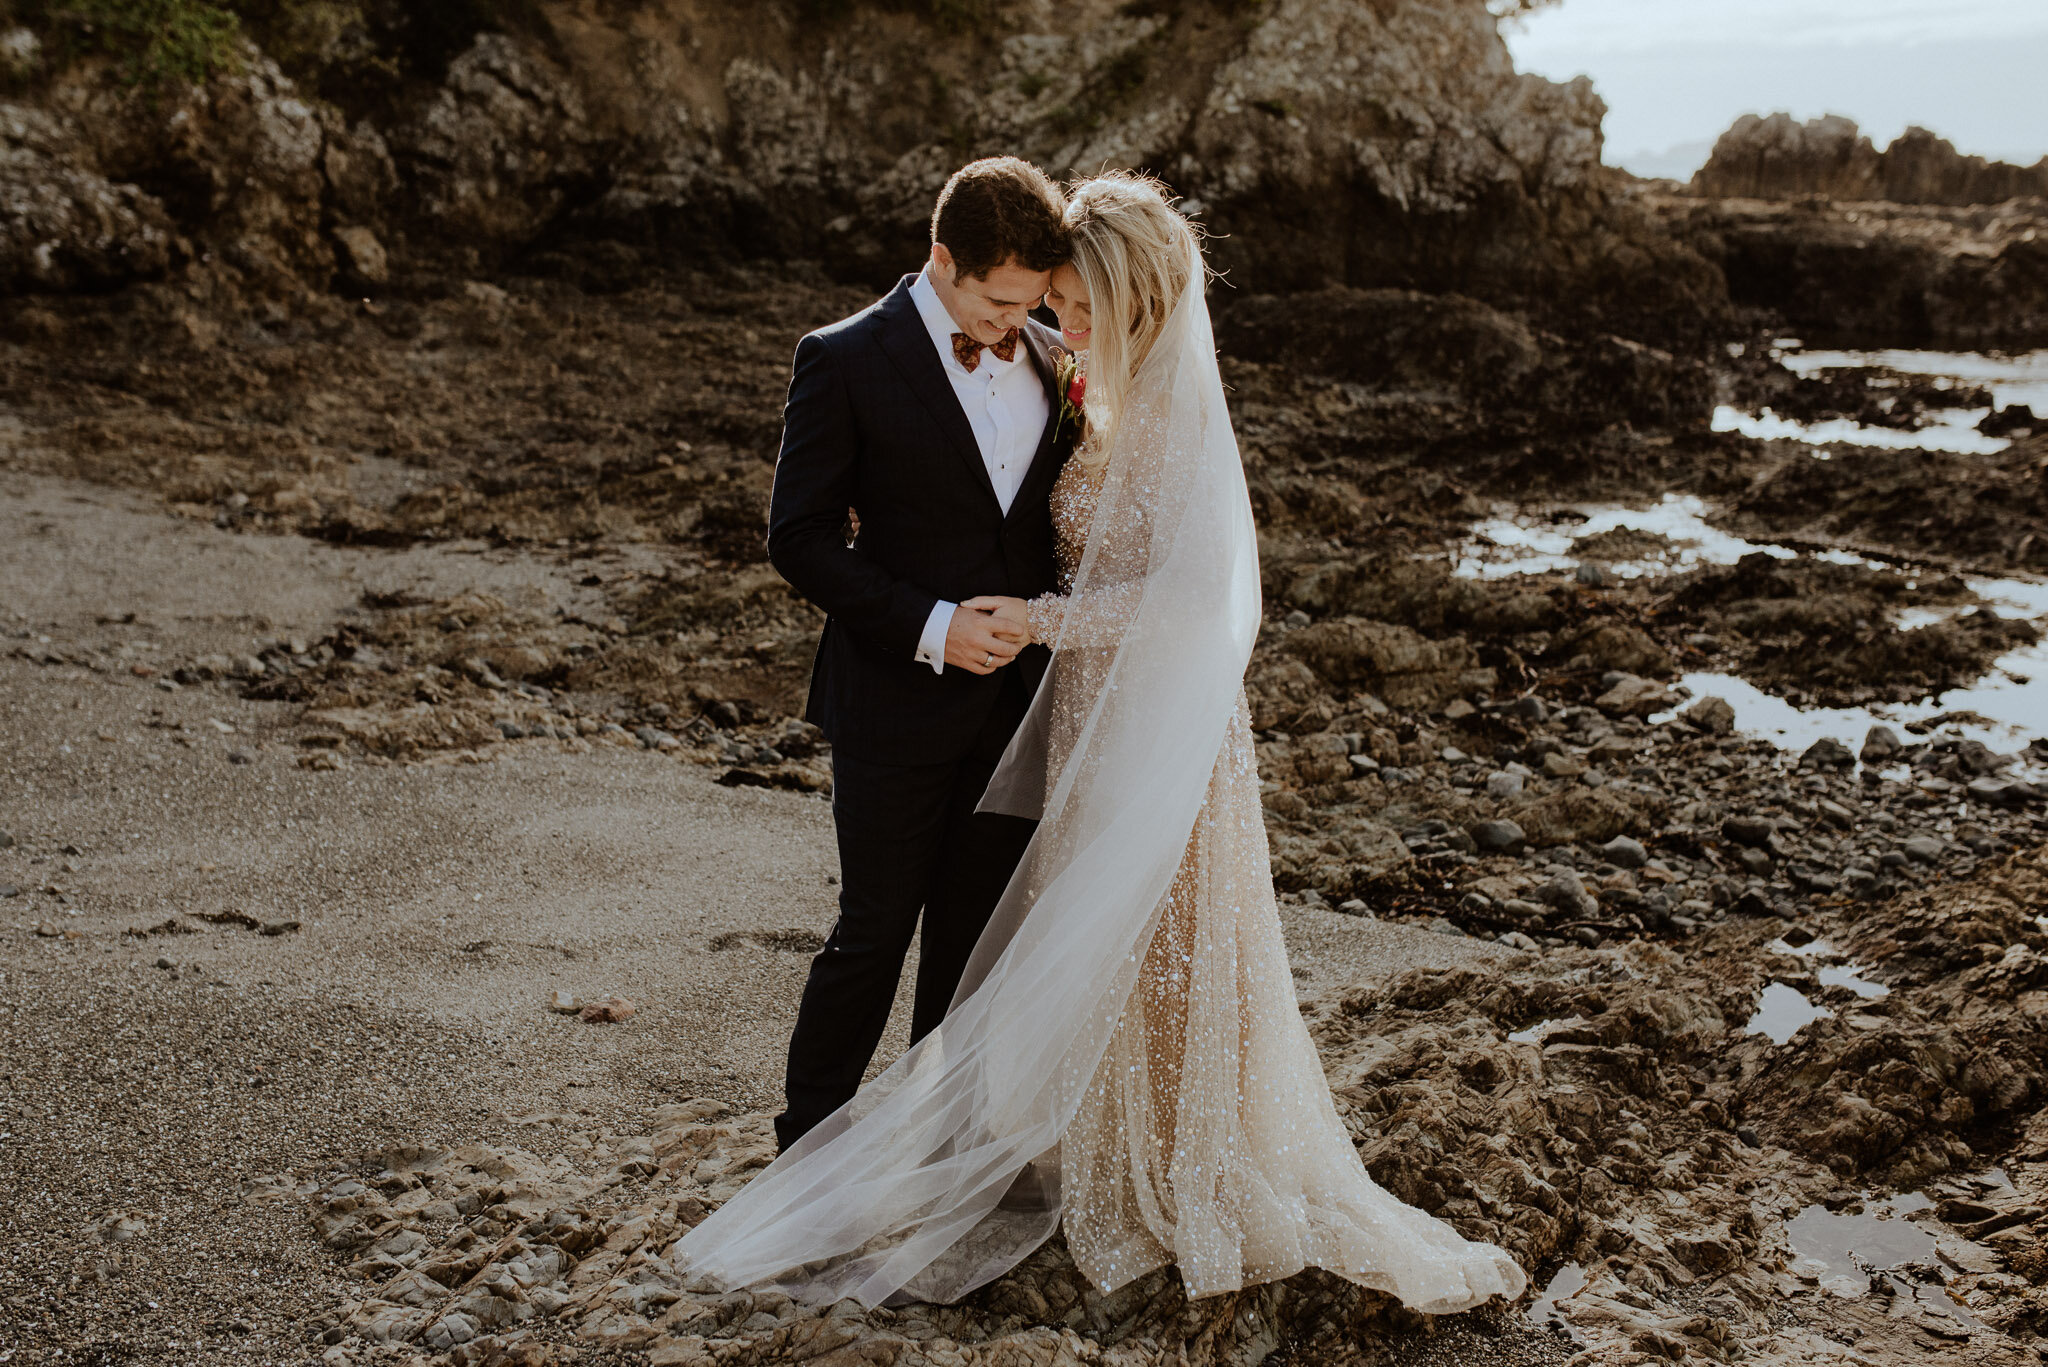 Bride and groom wedding photos on rocky cove, Waiheke Island